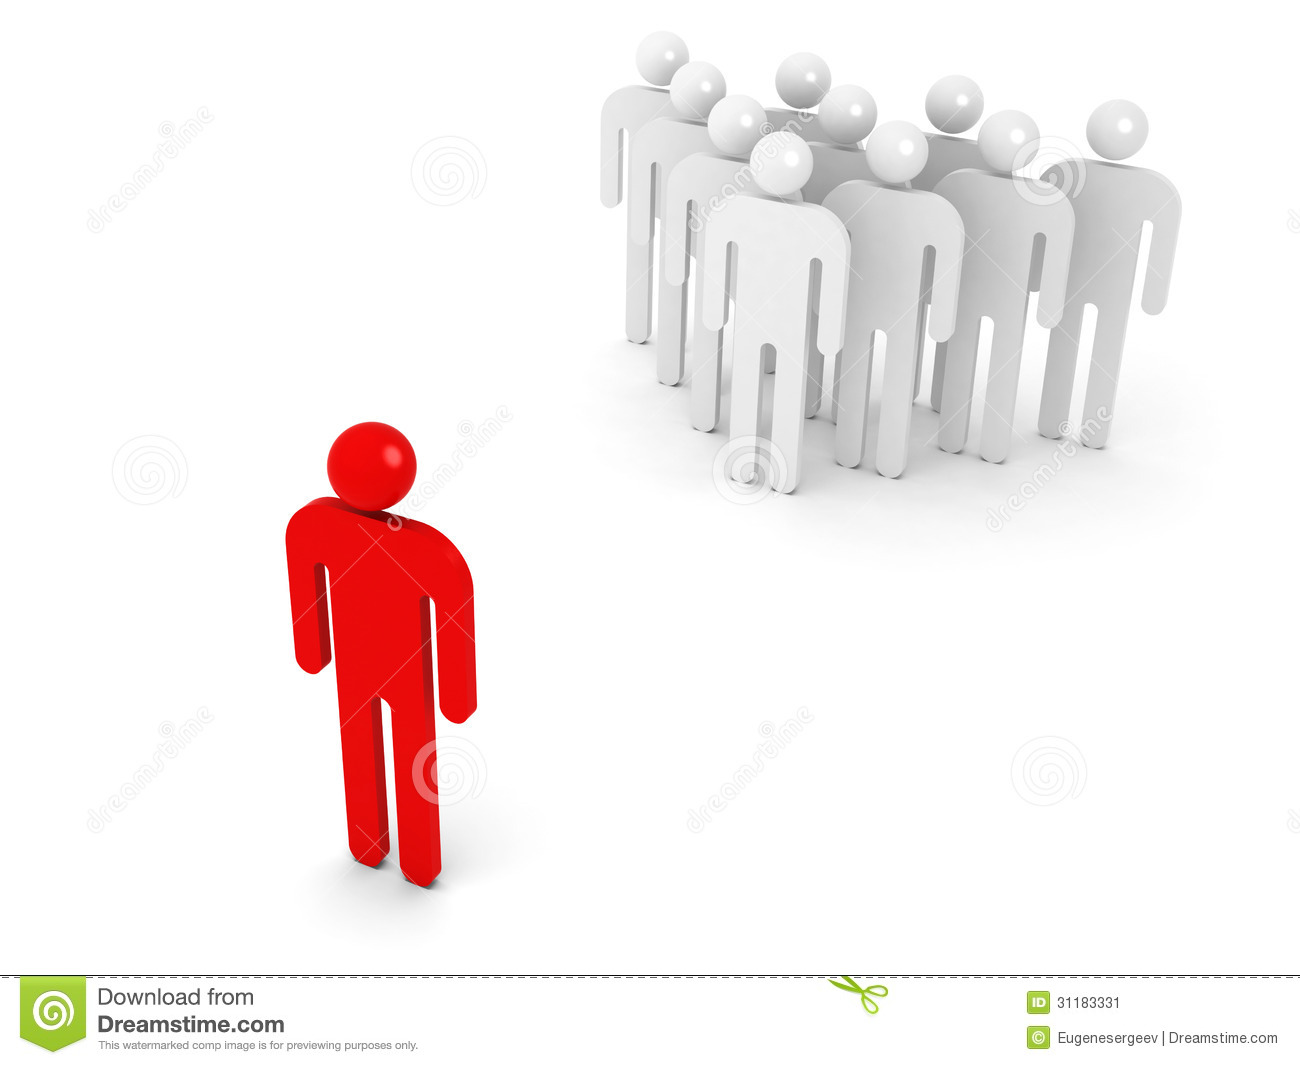 group of schematic people and one opposite red stock image crown clipart transparent crown clipart transparent